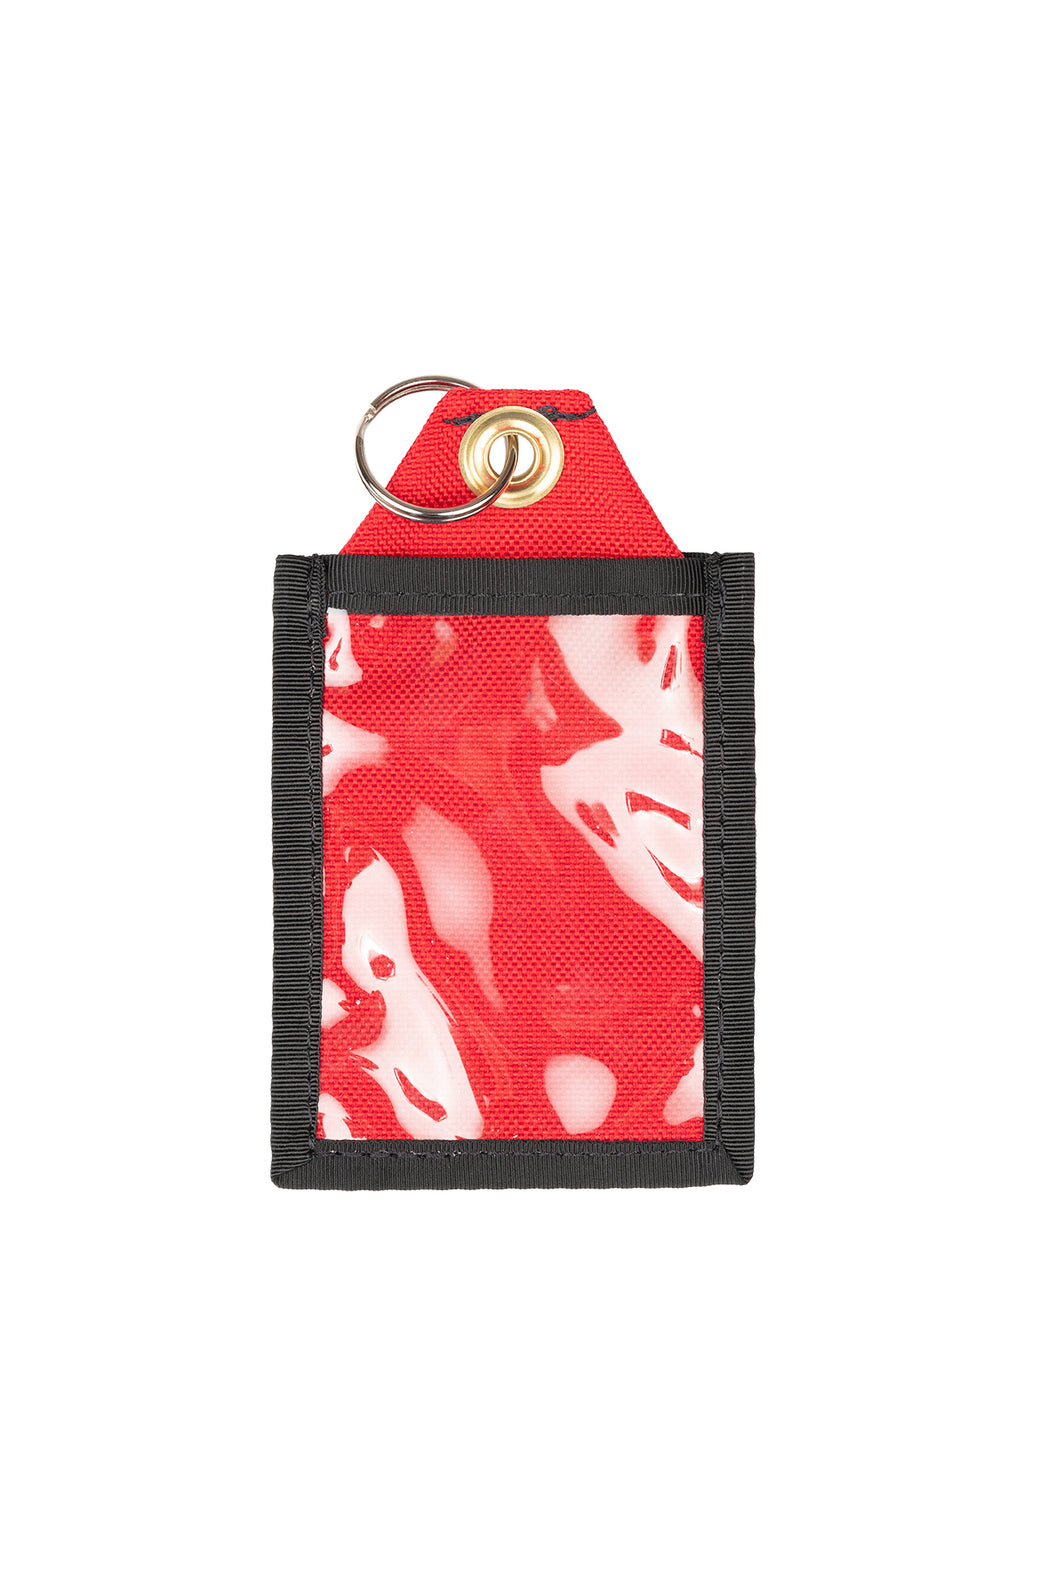 Credit Card & Key Organizer- Quick Release, The Pack Shack